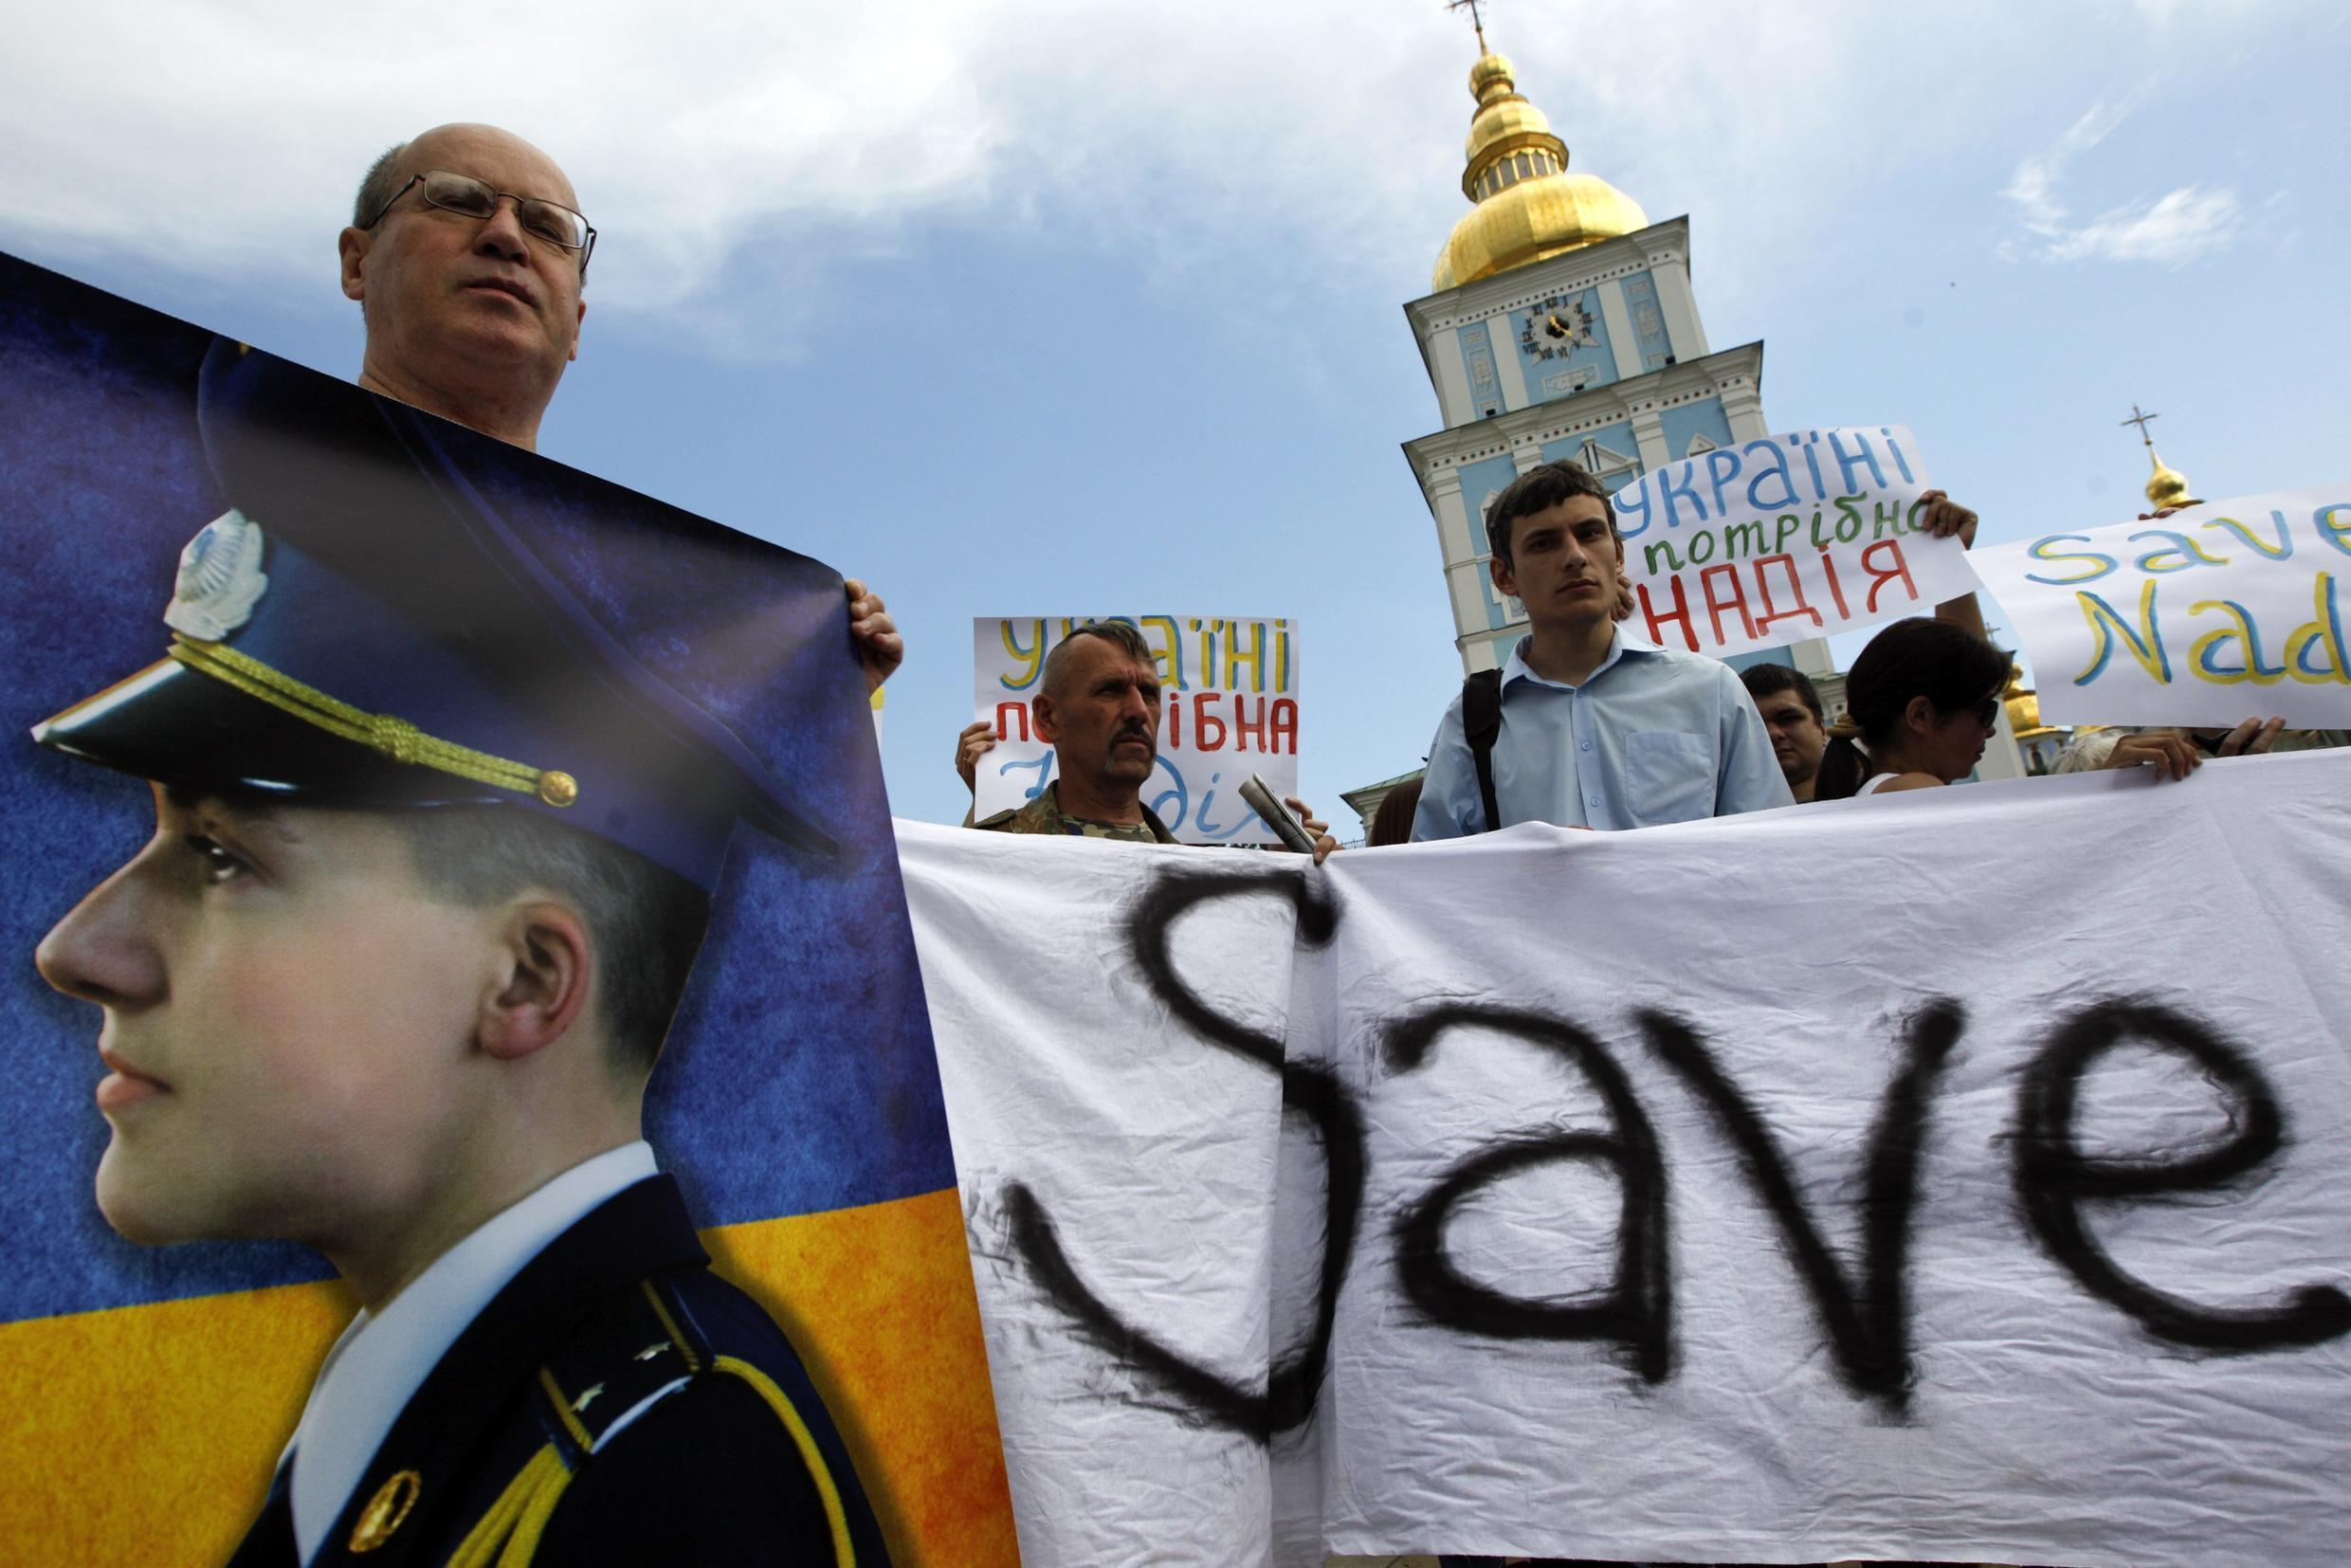 Activists hold placards and banners demanding the release of Ukrainian woman pilot, Nadezhna Savchenko, during a protest in Kiev July 11, 2014.